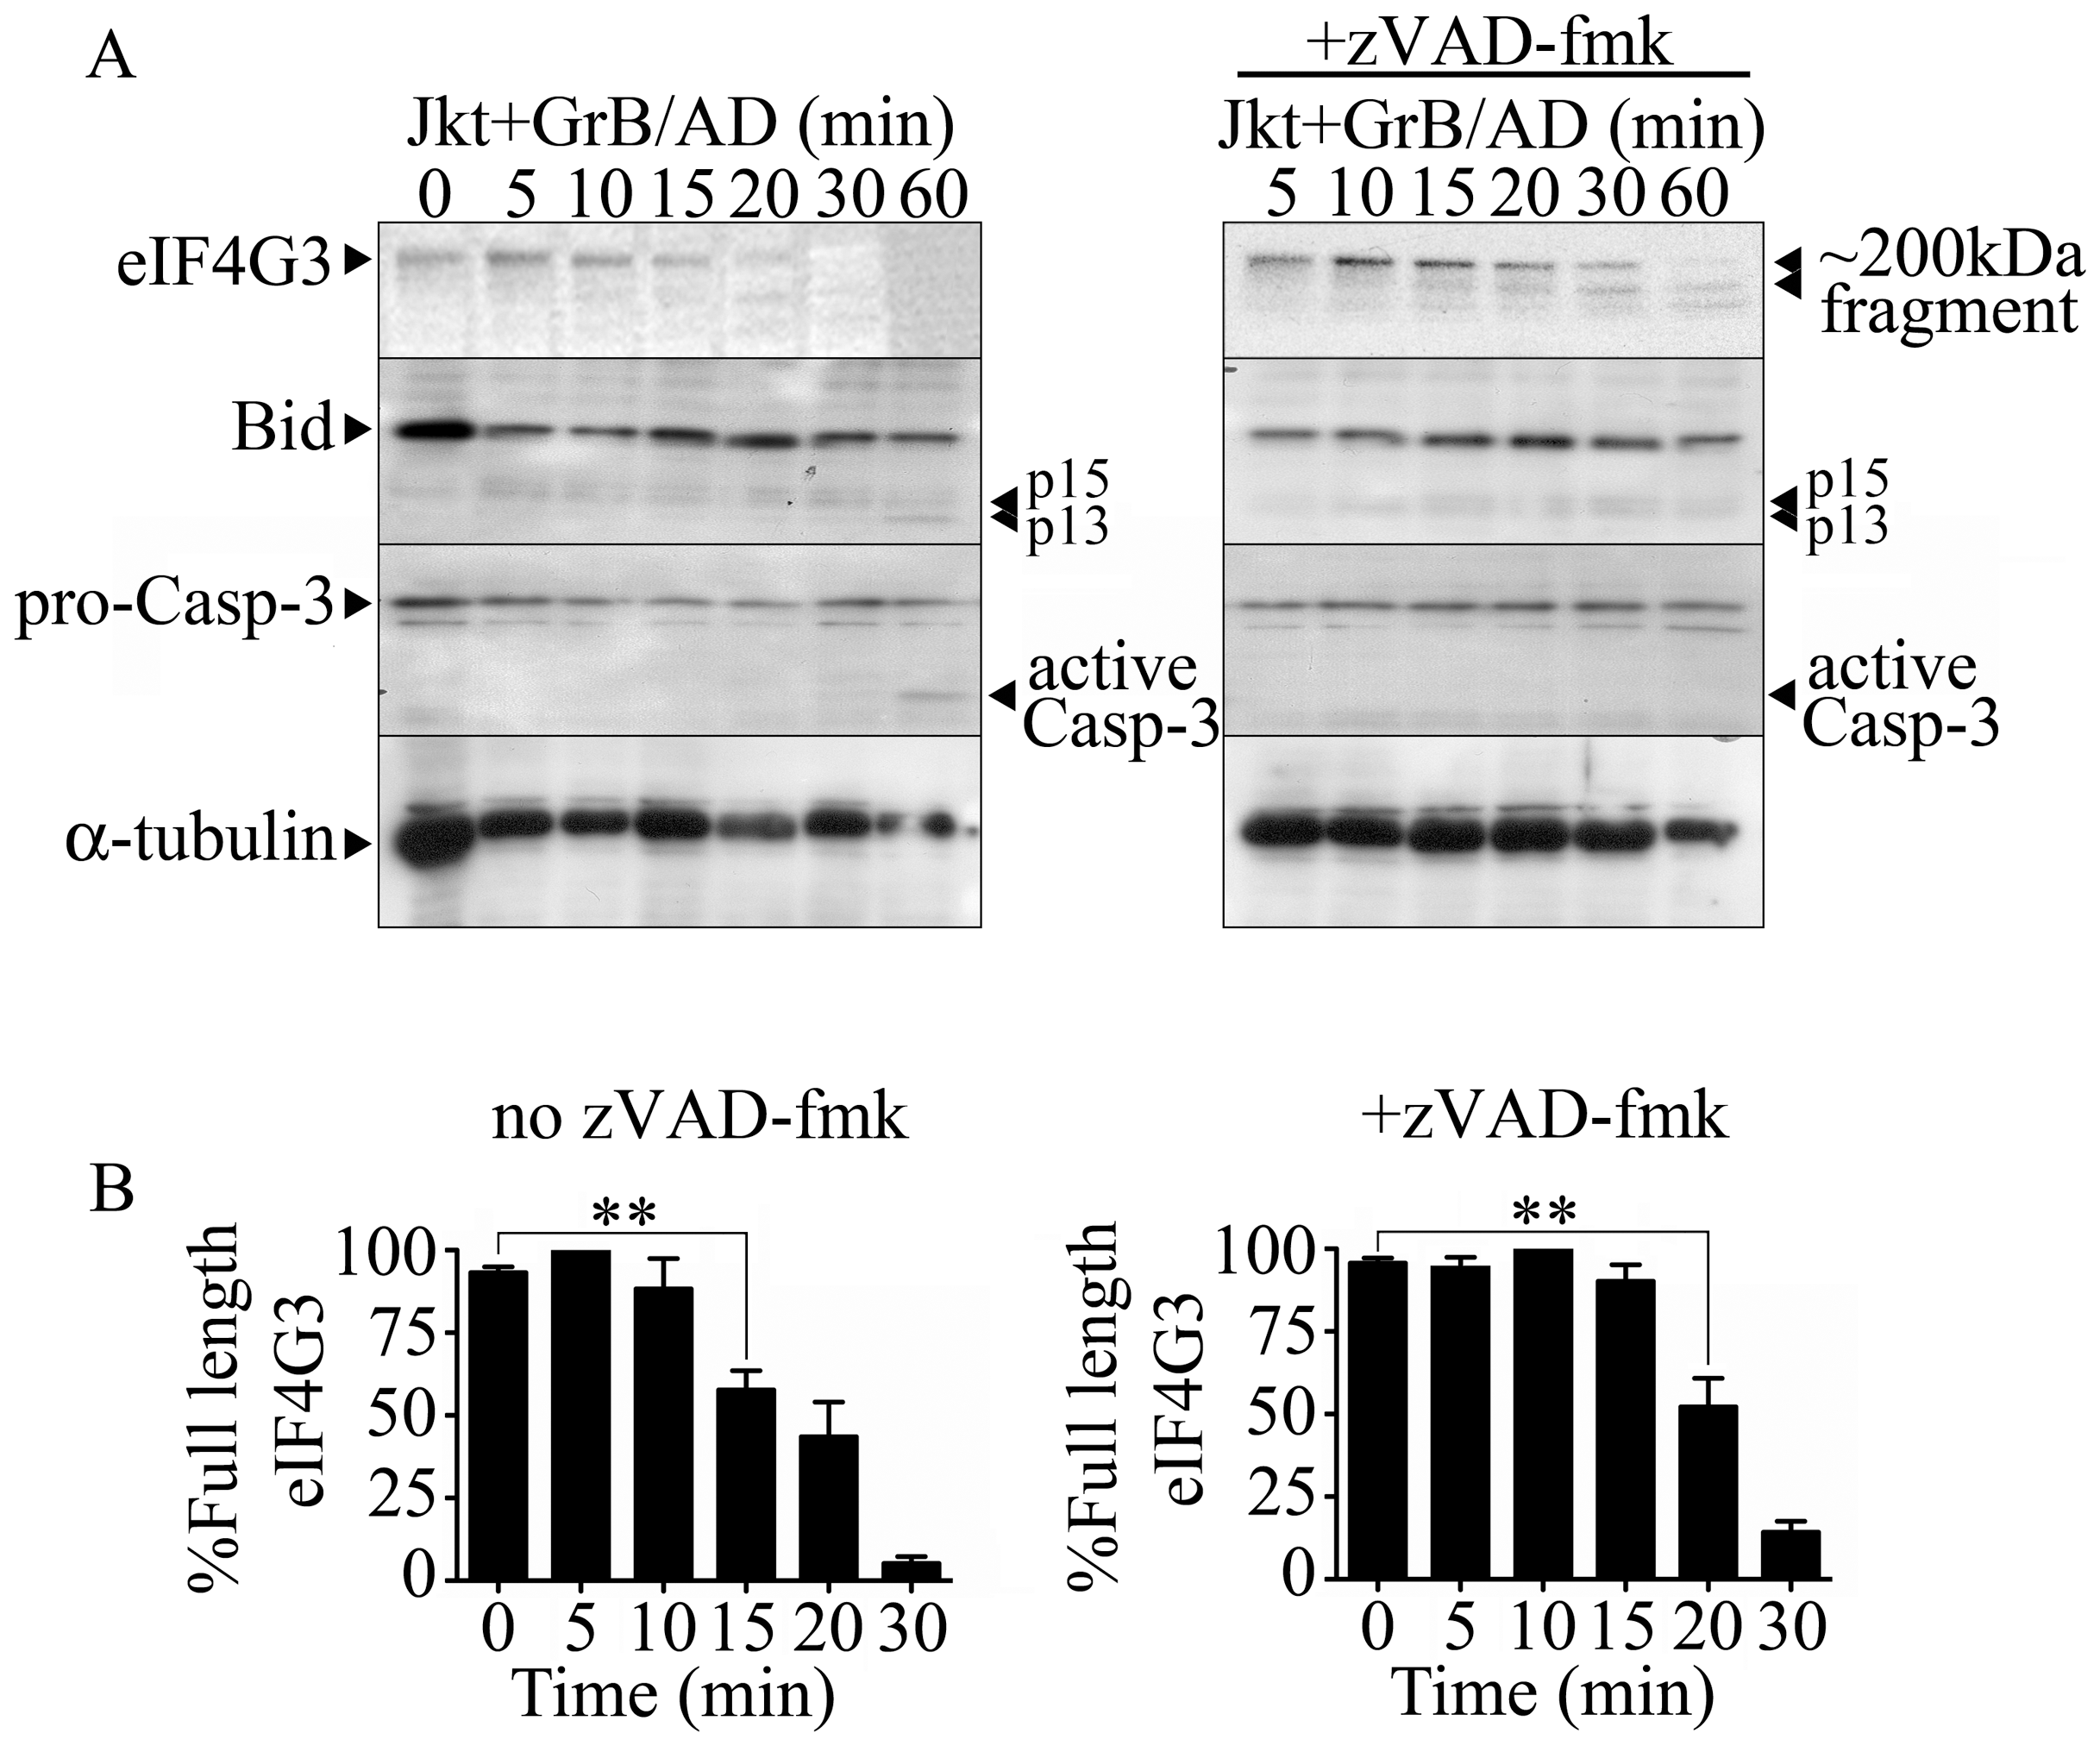 The eukaryotic translation initiation factor eIF4G3 is degraded by GrB (1 µg/ml) in Jurkat (Jkt) cells.